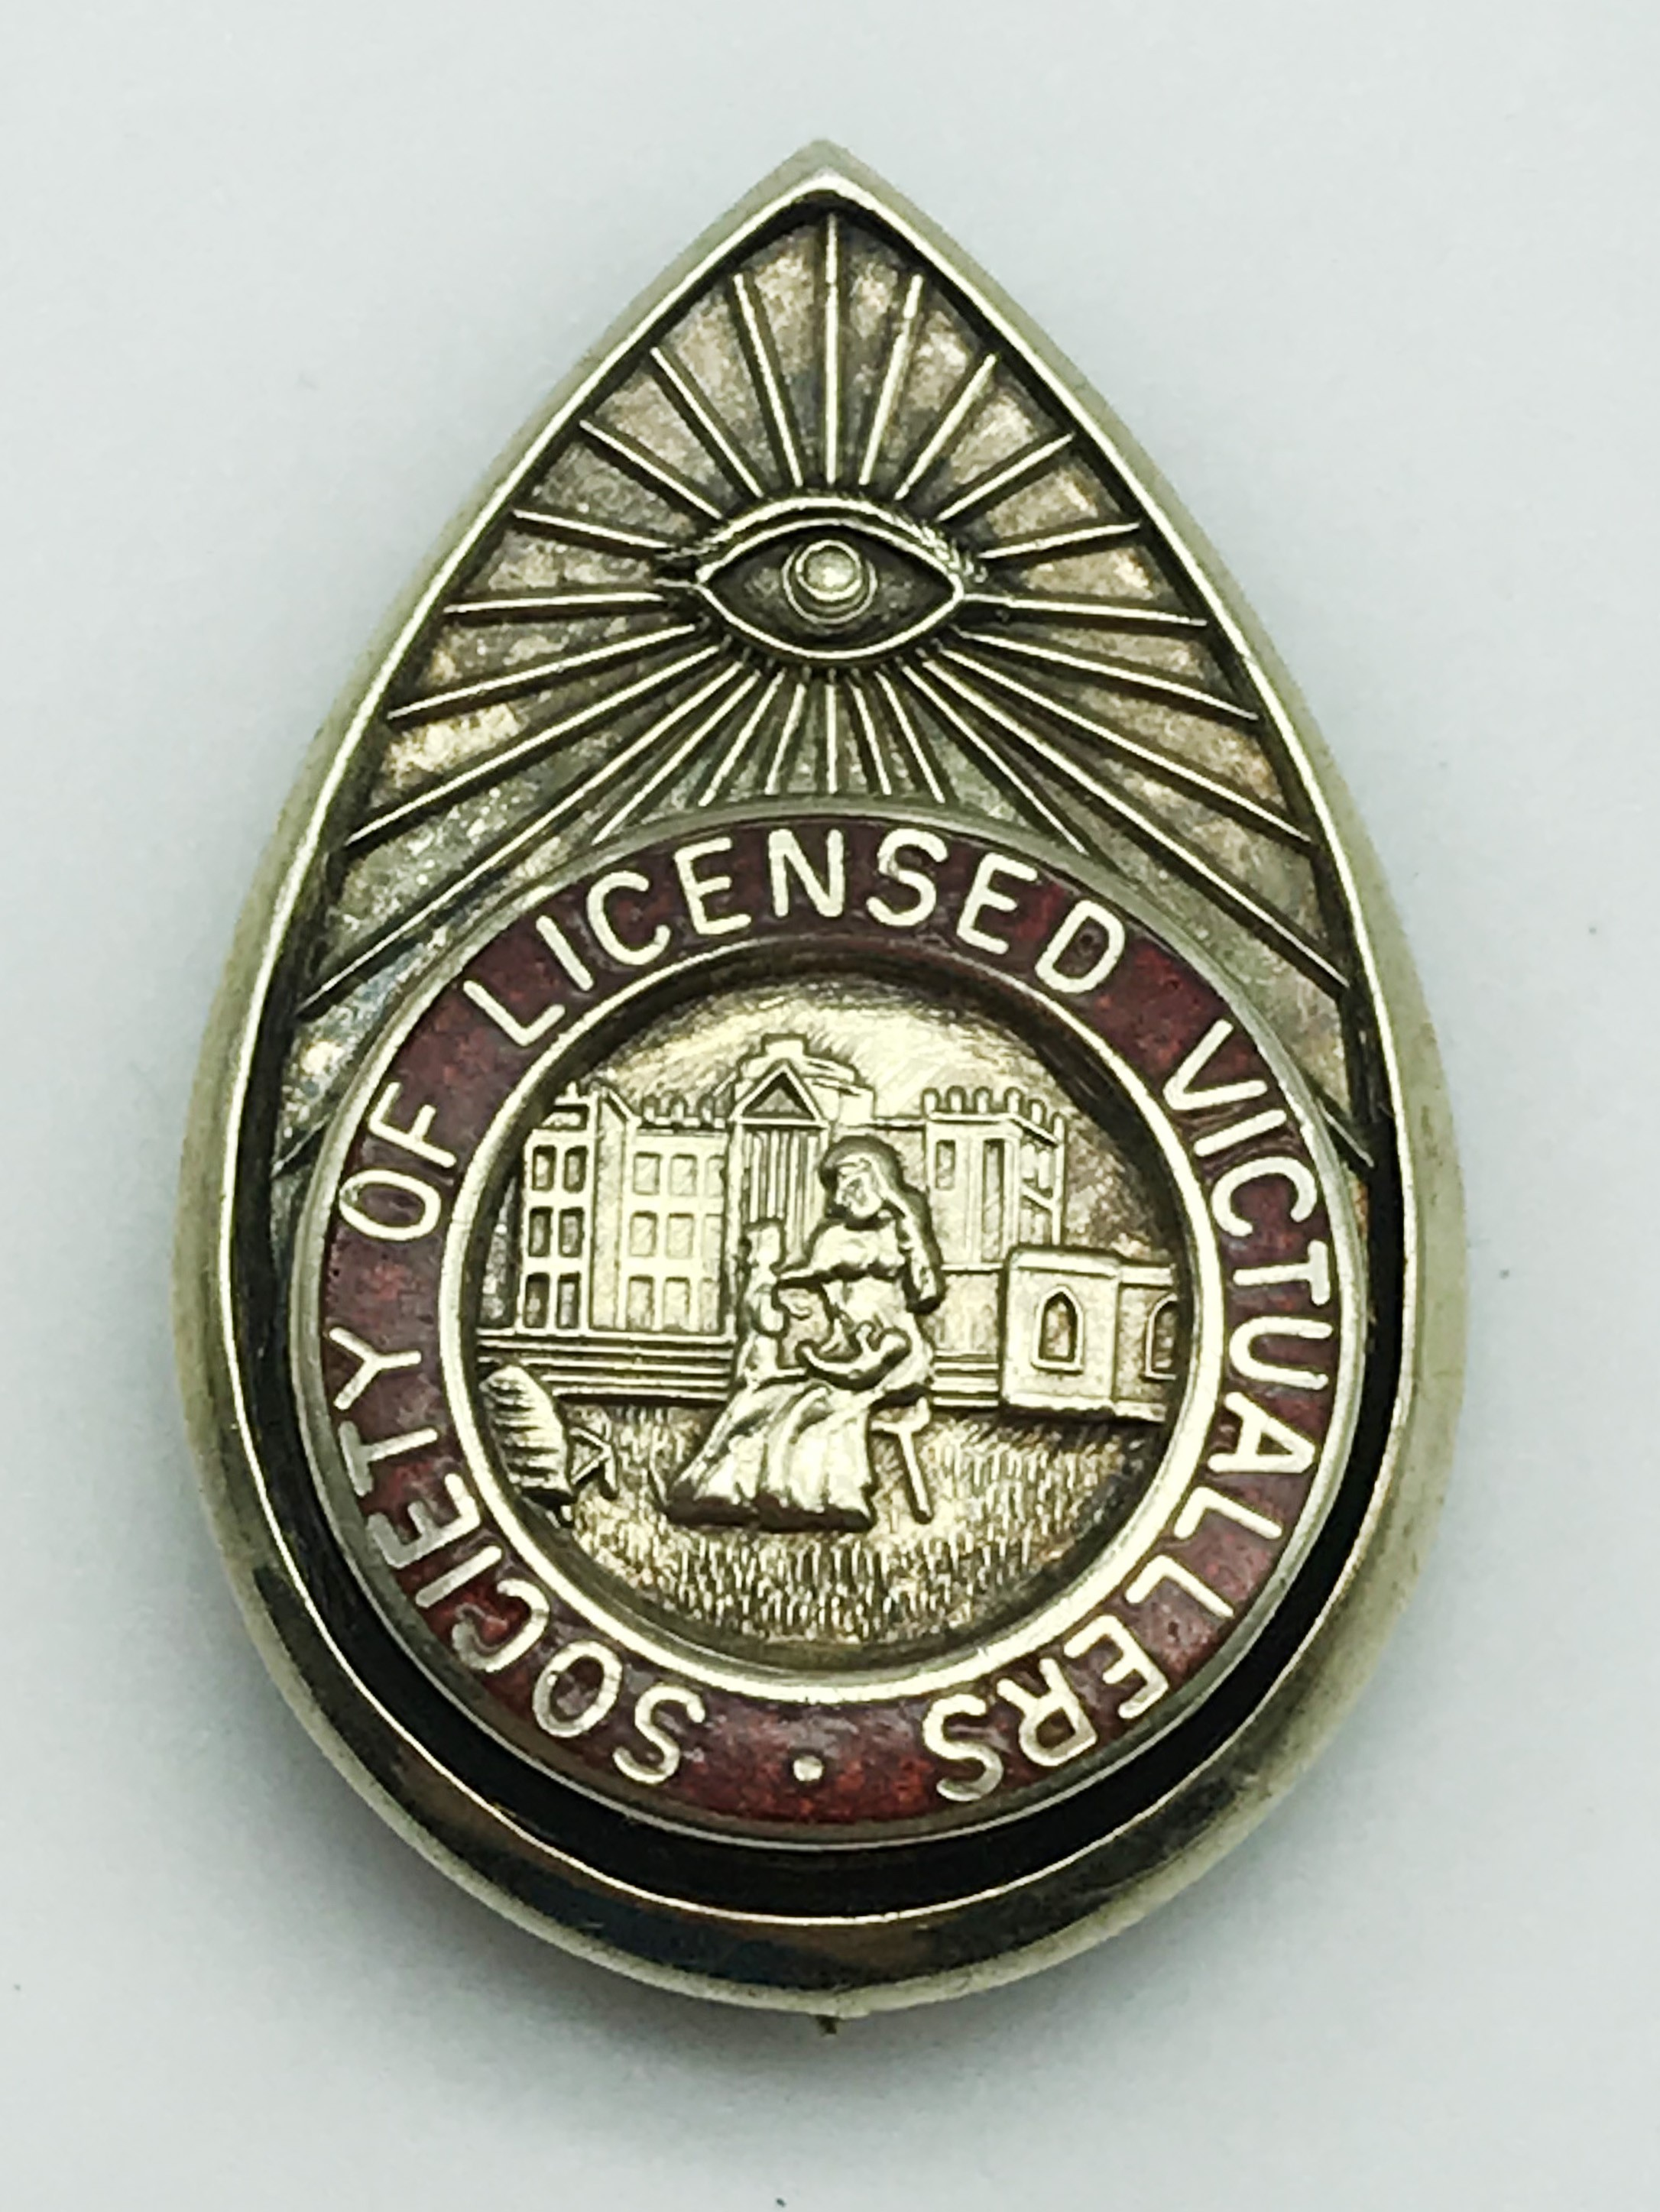 Lot 16 - UNUSUAL SMALL ENAMELLED BROOCH OF SOCIETY OF LICENSED VICTUALLERS